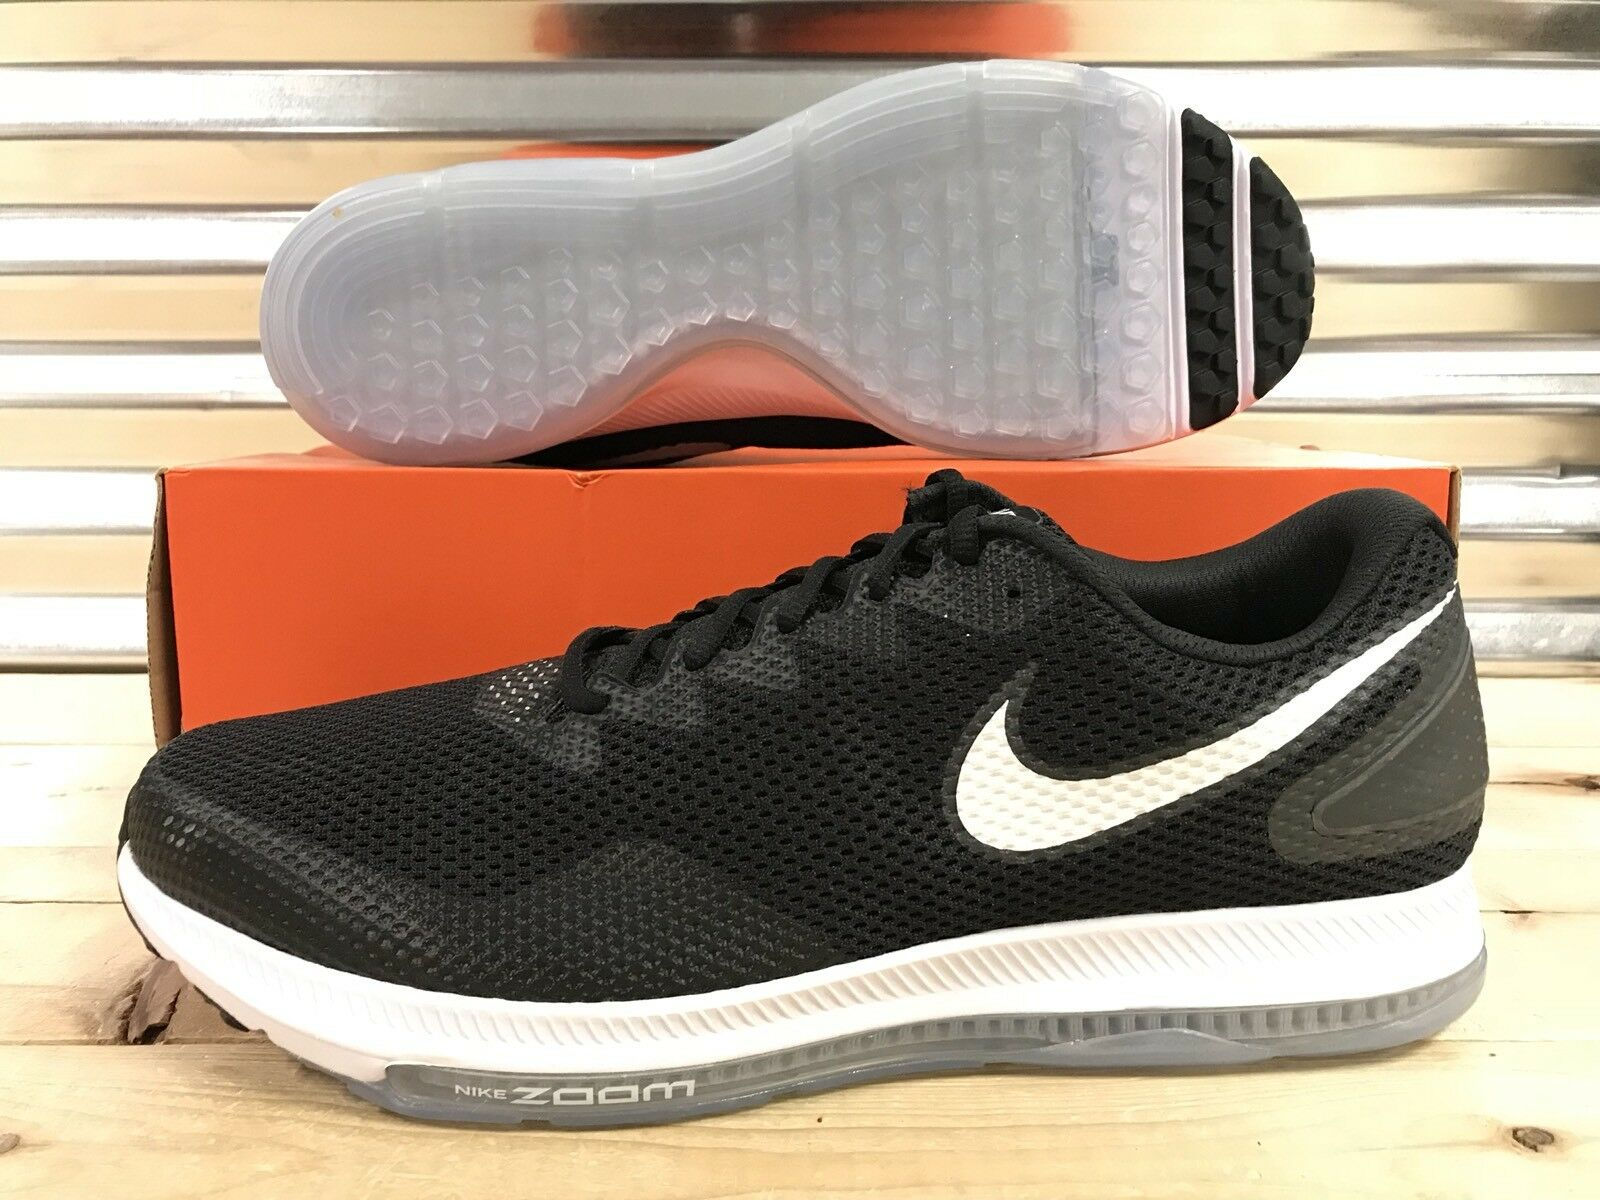 Nike Zoom All Out Low 2 Running Shoes Black White Oreo Anthracite ( AJ0035-003 )